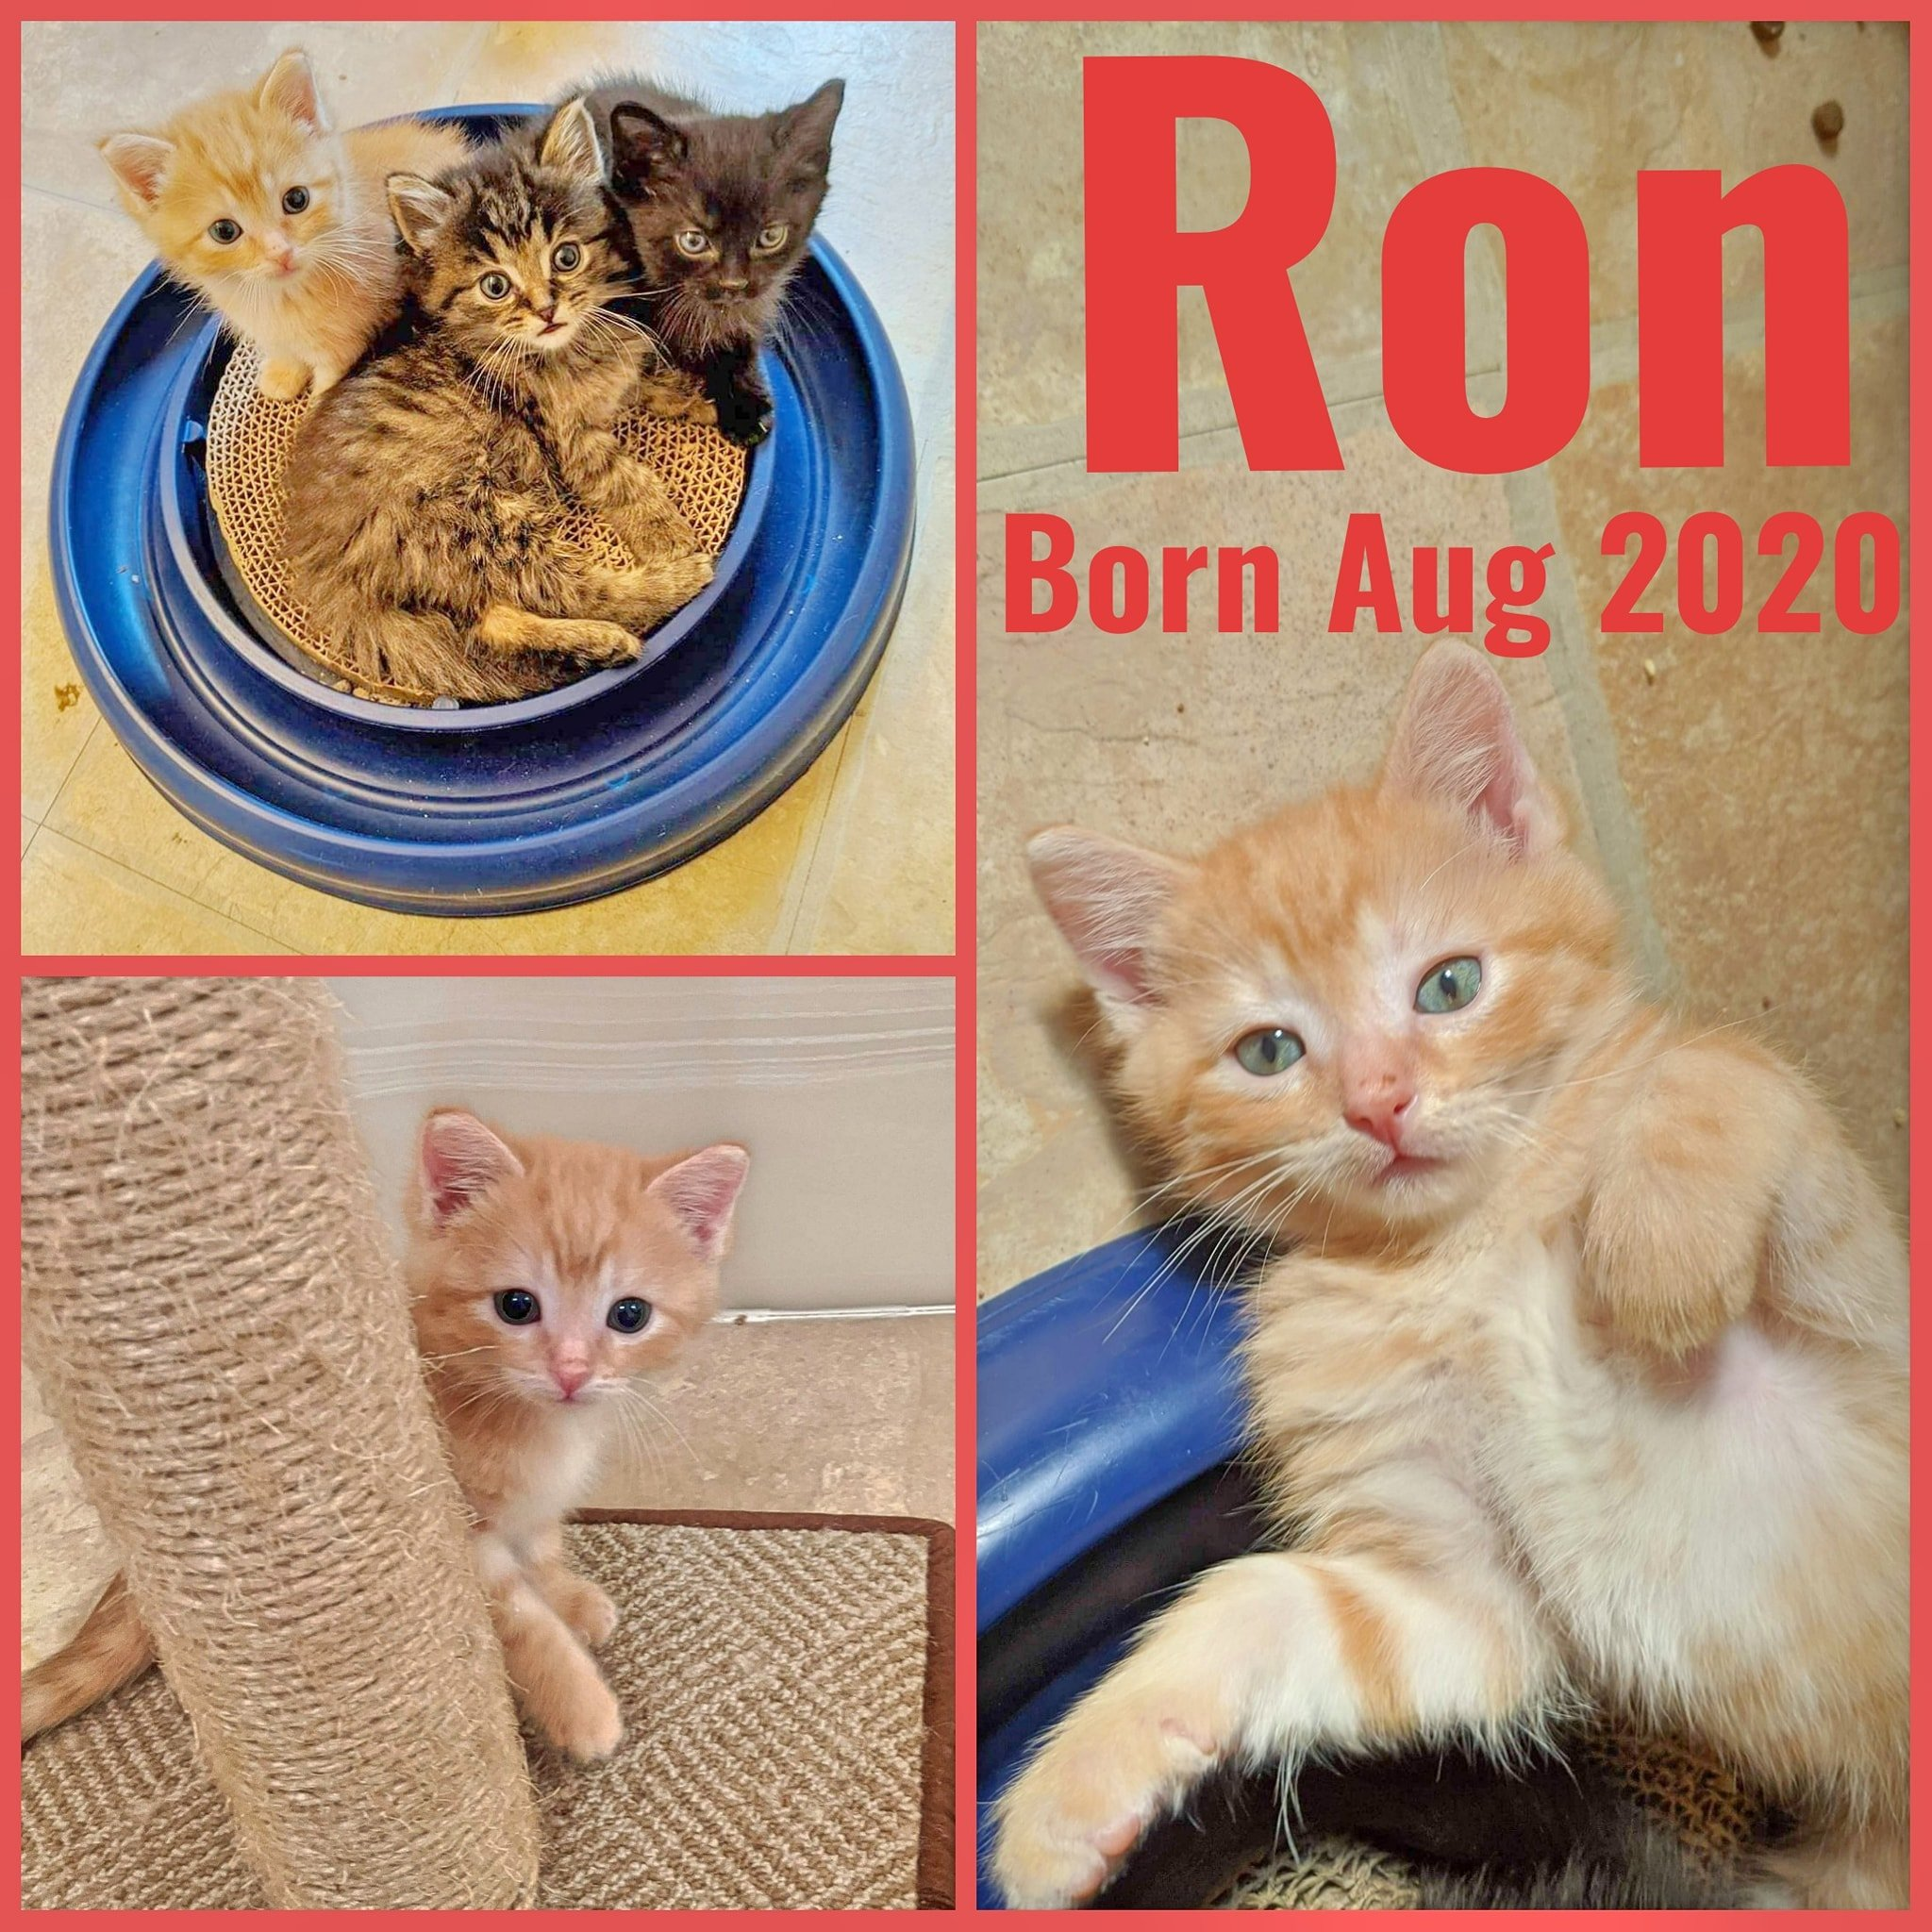 Ron-Male-Born August 2020